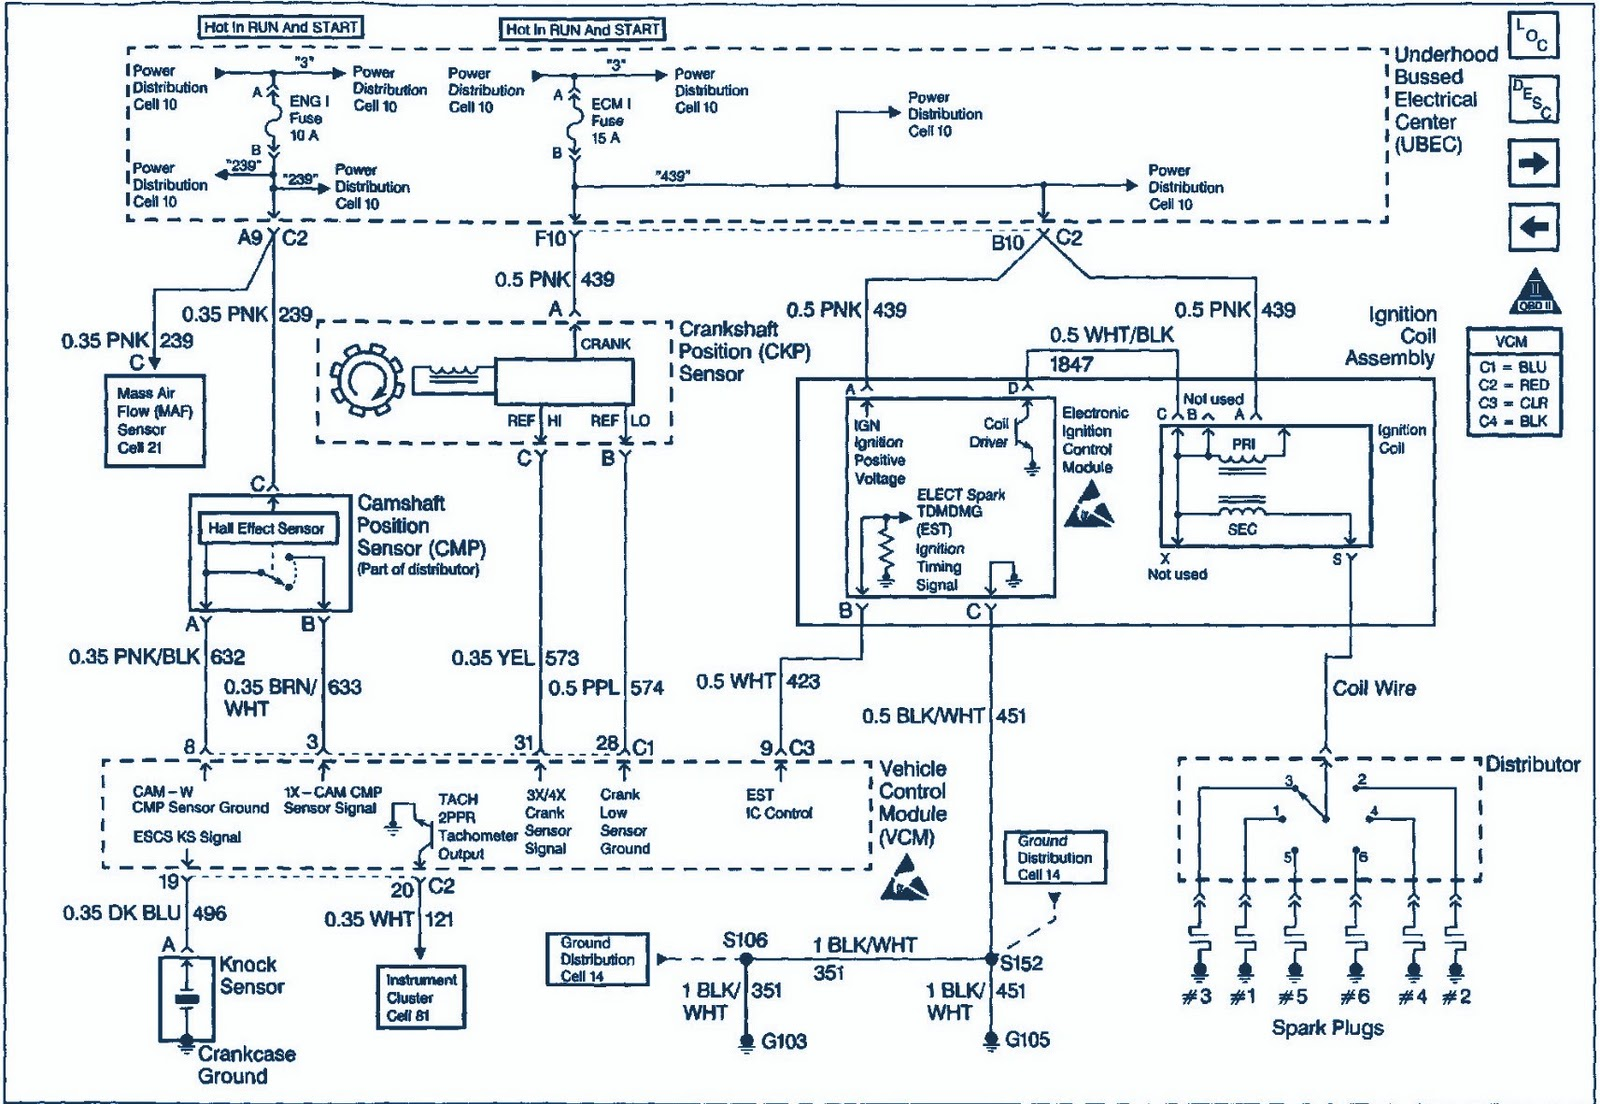 isuzu elf electrical wiring diagram - wiring diagram parched-dedicated -  parched-dedicated.pasticceriagele.it  pasticceriagele.it